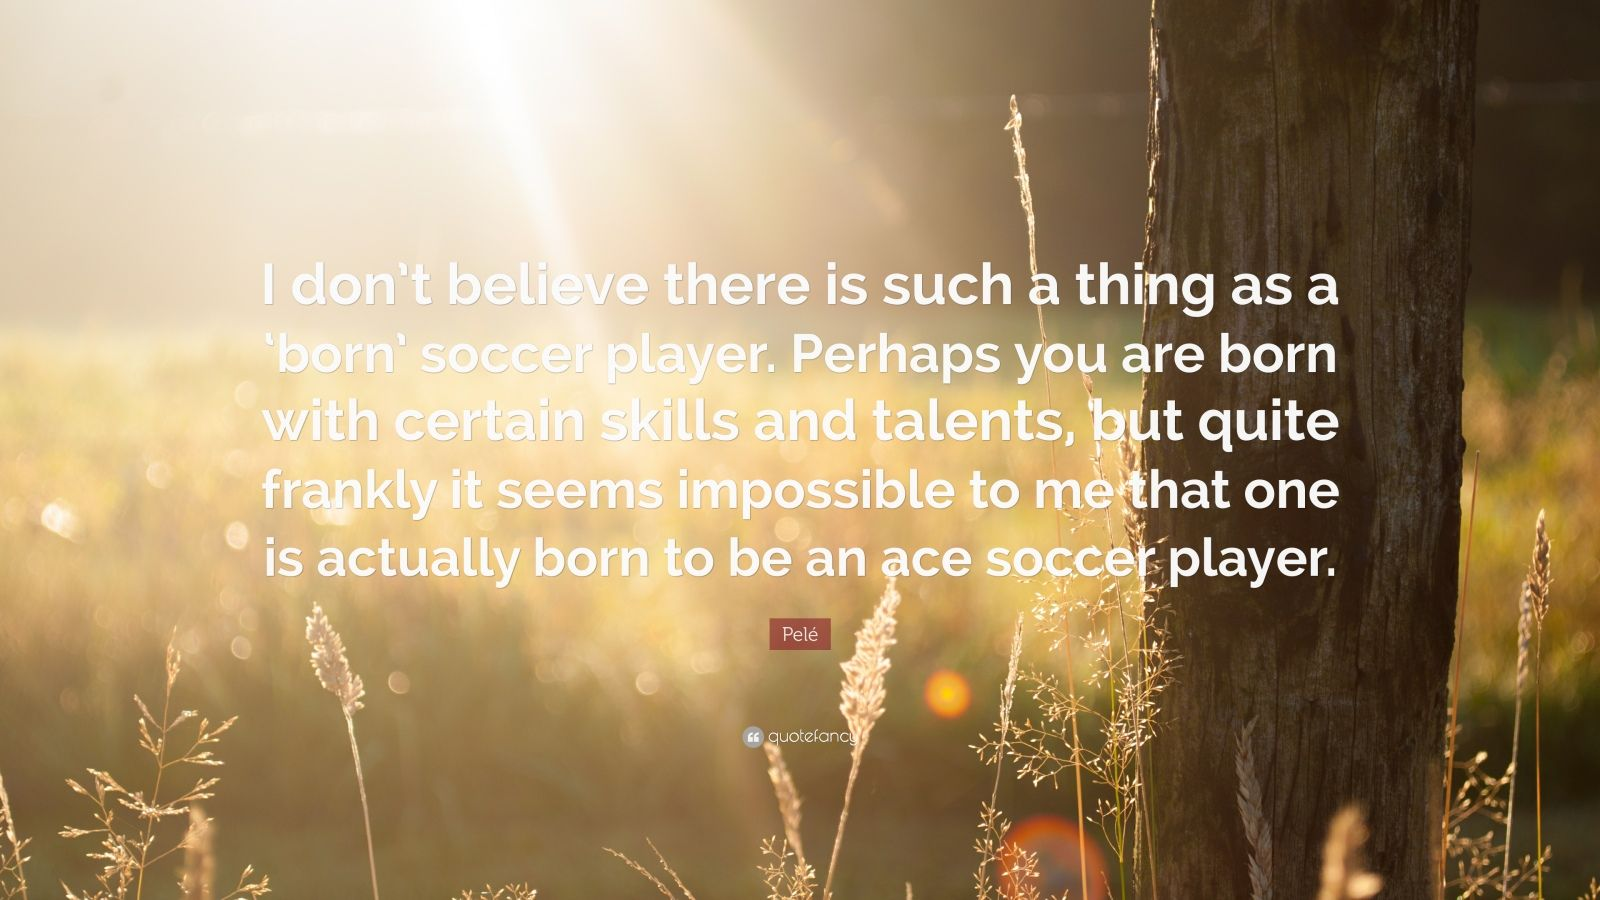 """Pelé Quote: """"I don't believe there is such a thing as a 'born' soccer player. Perhaps you are born with certain skills and talents, but quite frankly it seems impossible to me that one is actually born to be an ace soccer player."""""""